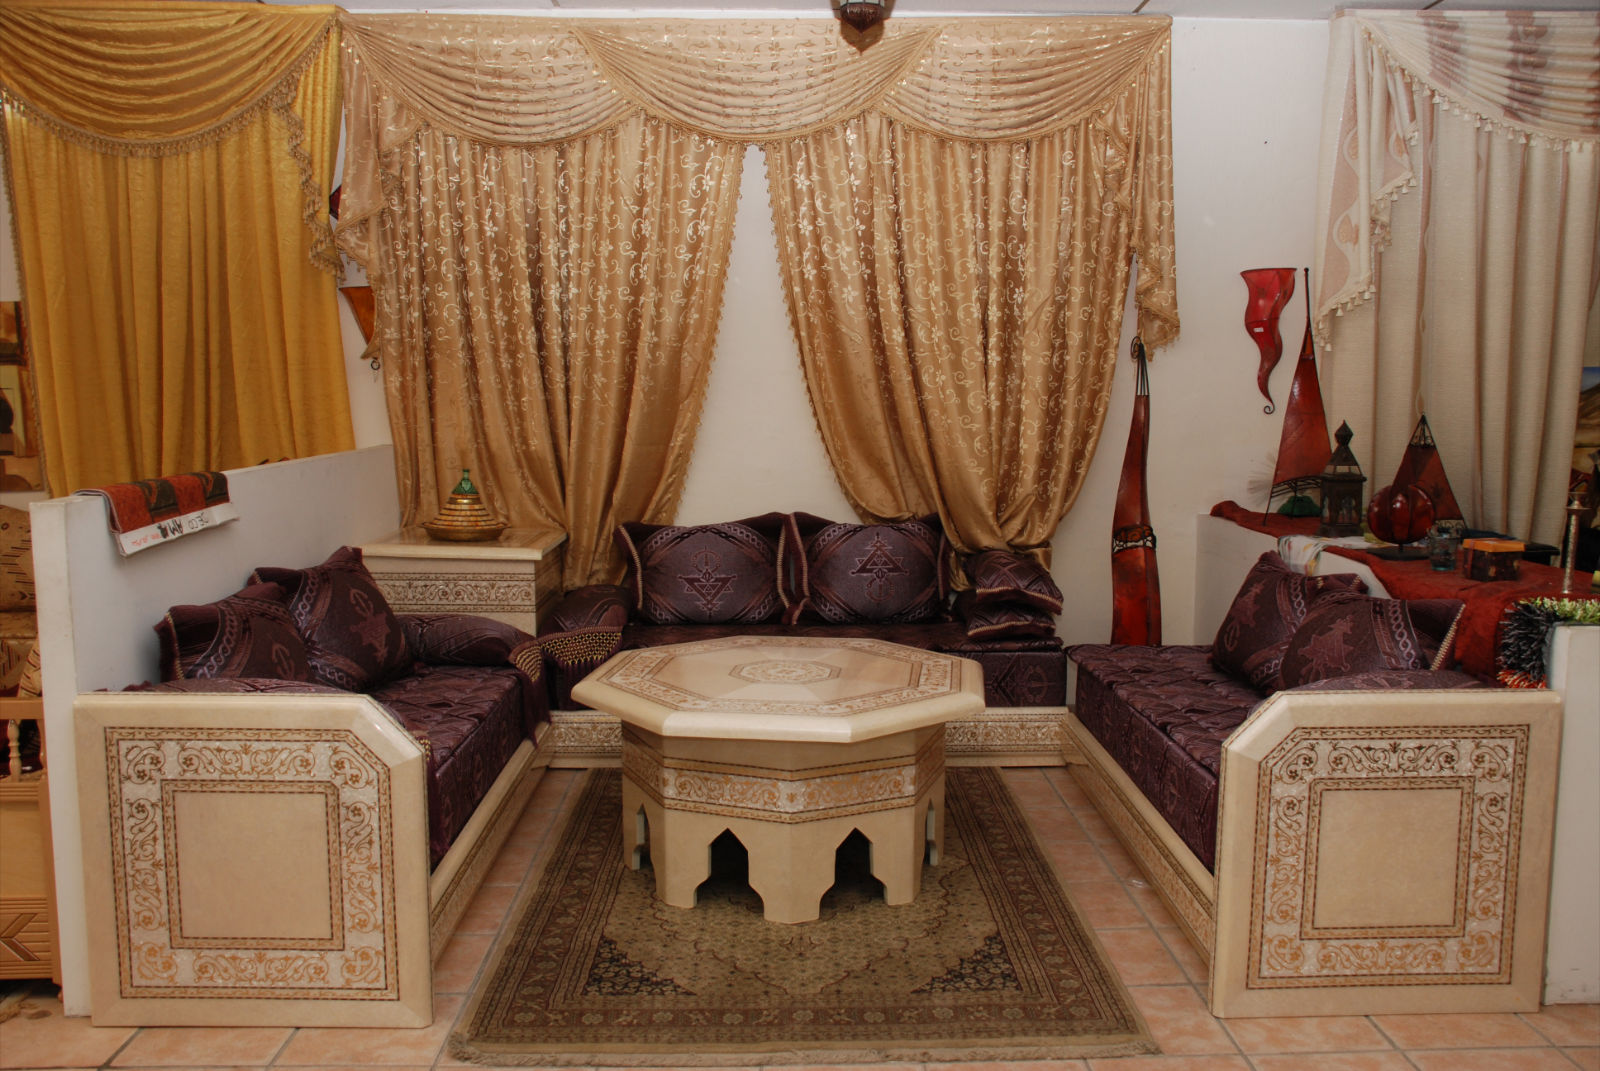 Decoration Maison 2016 Decoration Maison Marocaine 2016